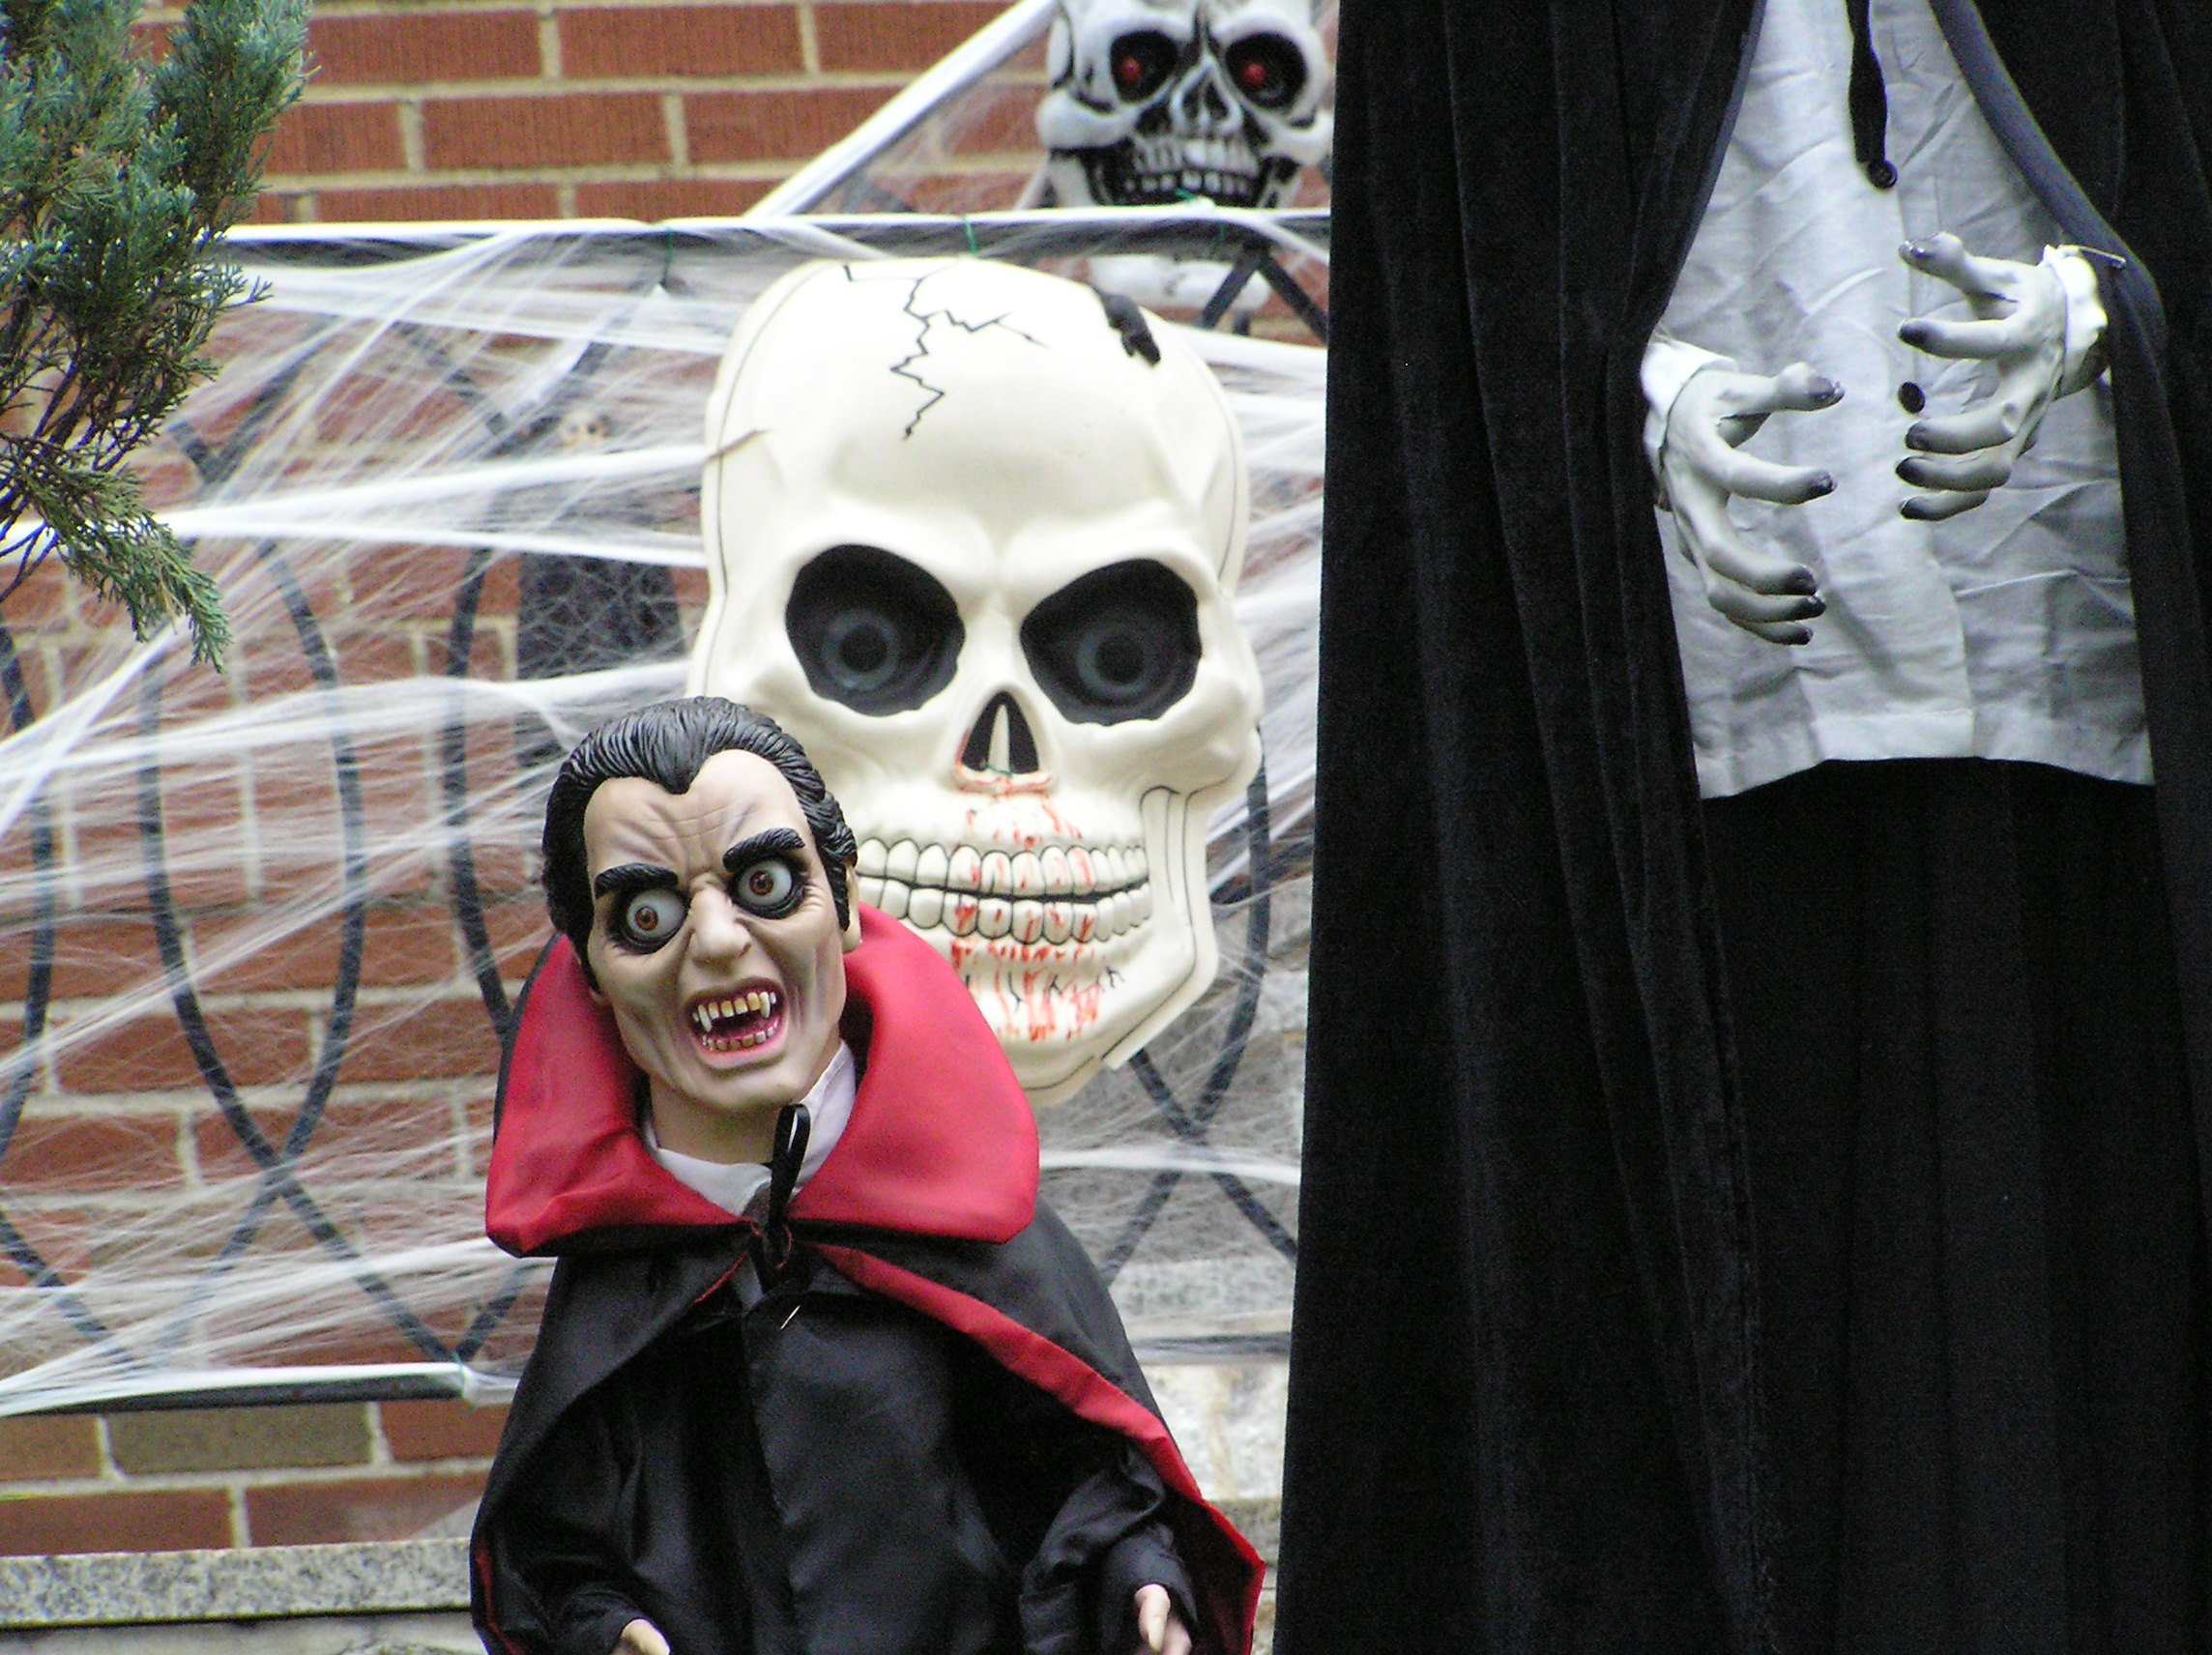 file:scary halloween figures 2012 - wikimedia commons